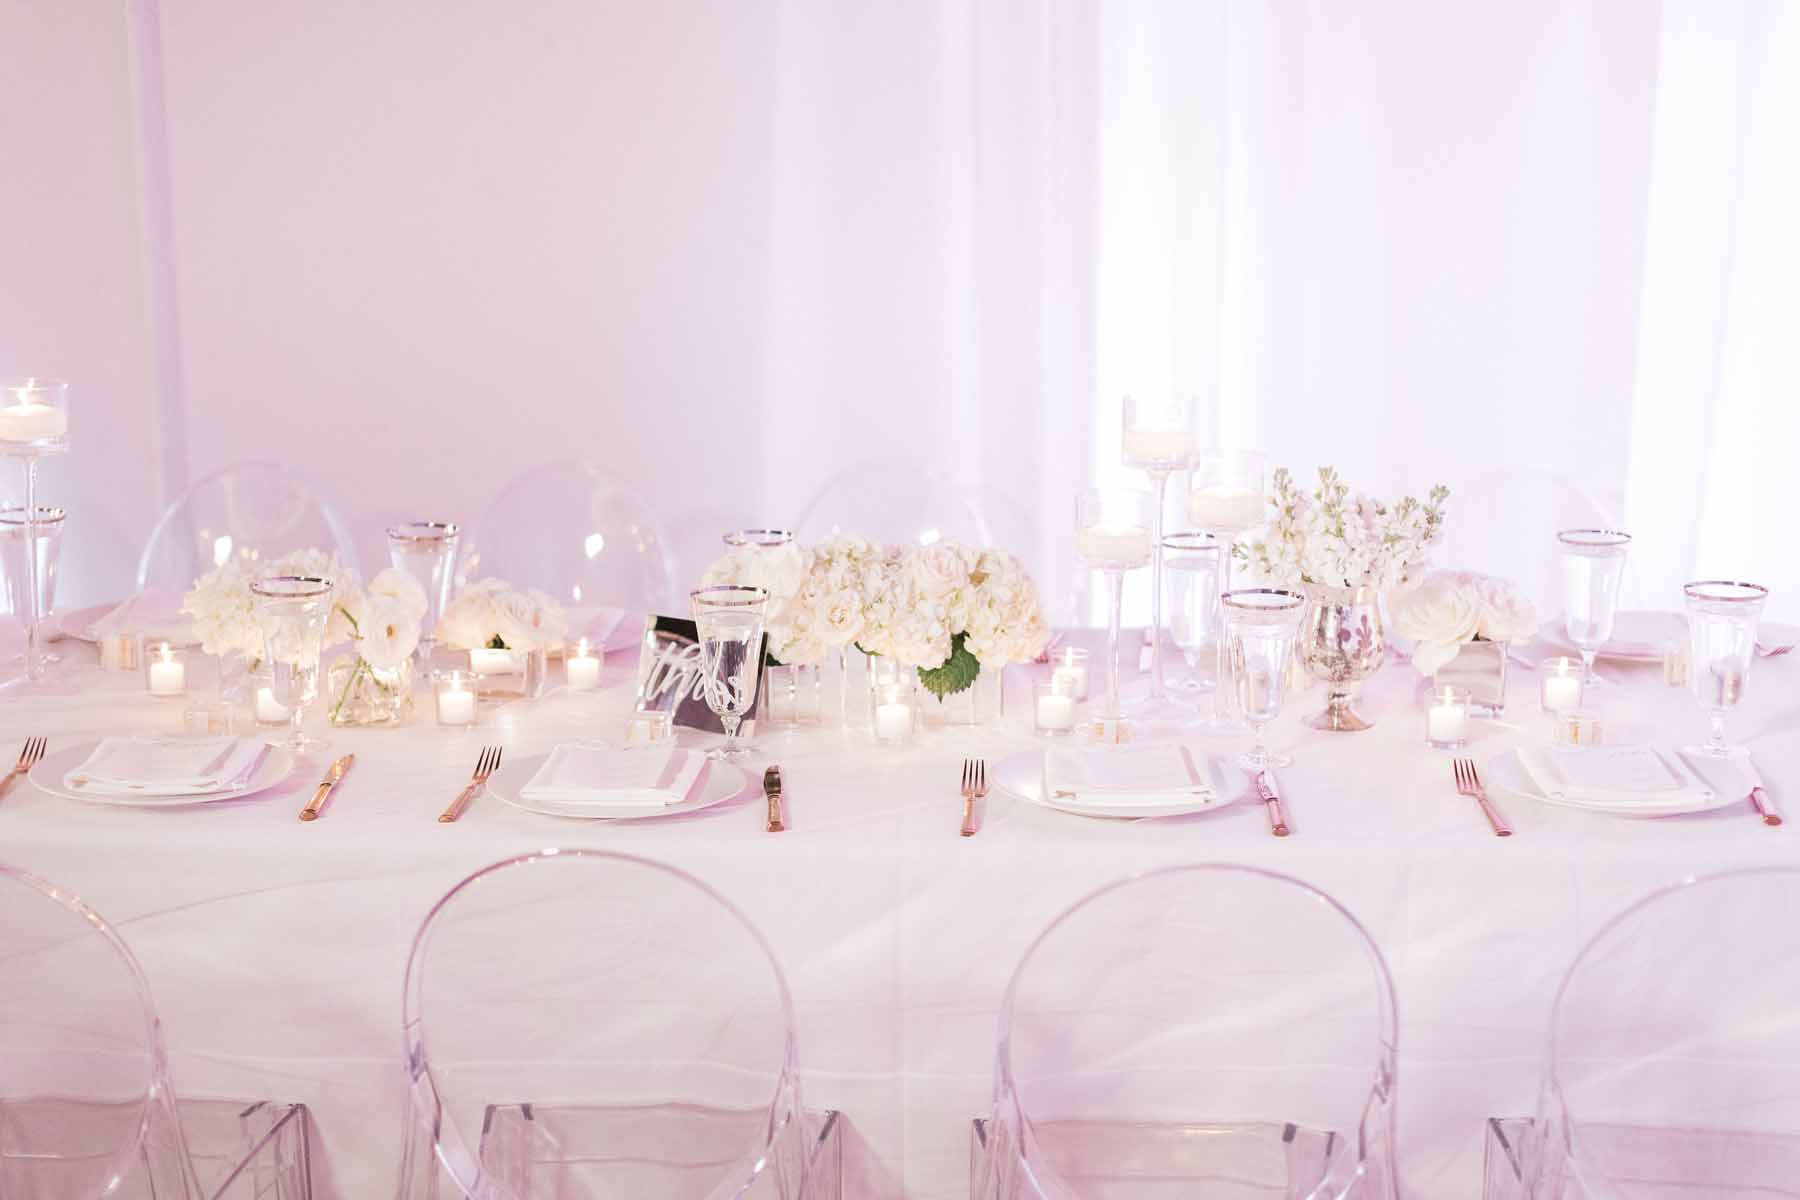 Long table at reception at Canvas Event Space wedding: ghost chairs and white draping